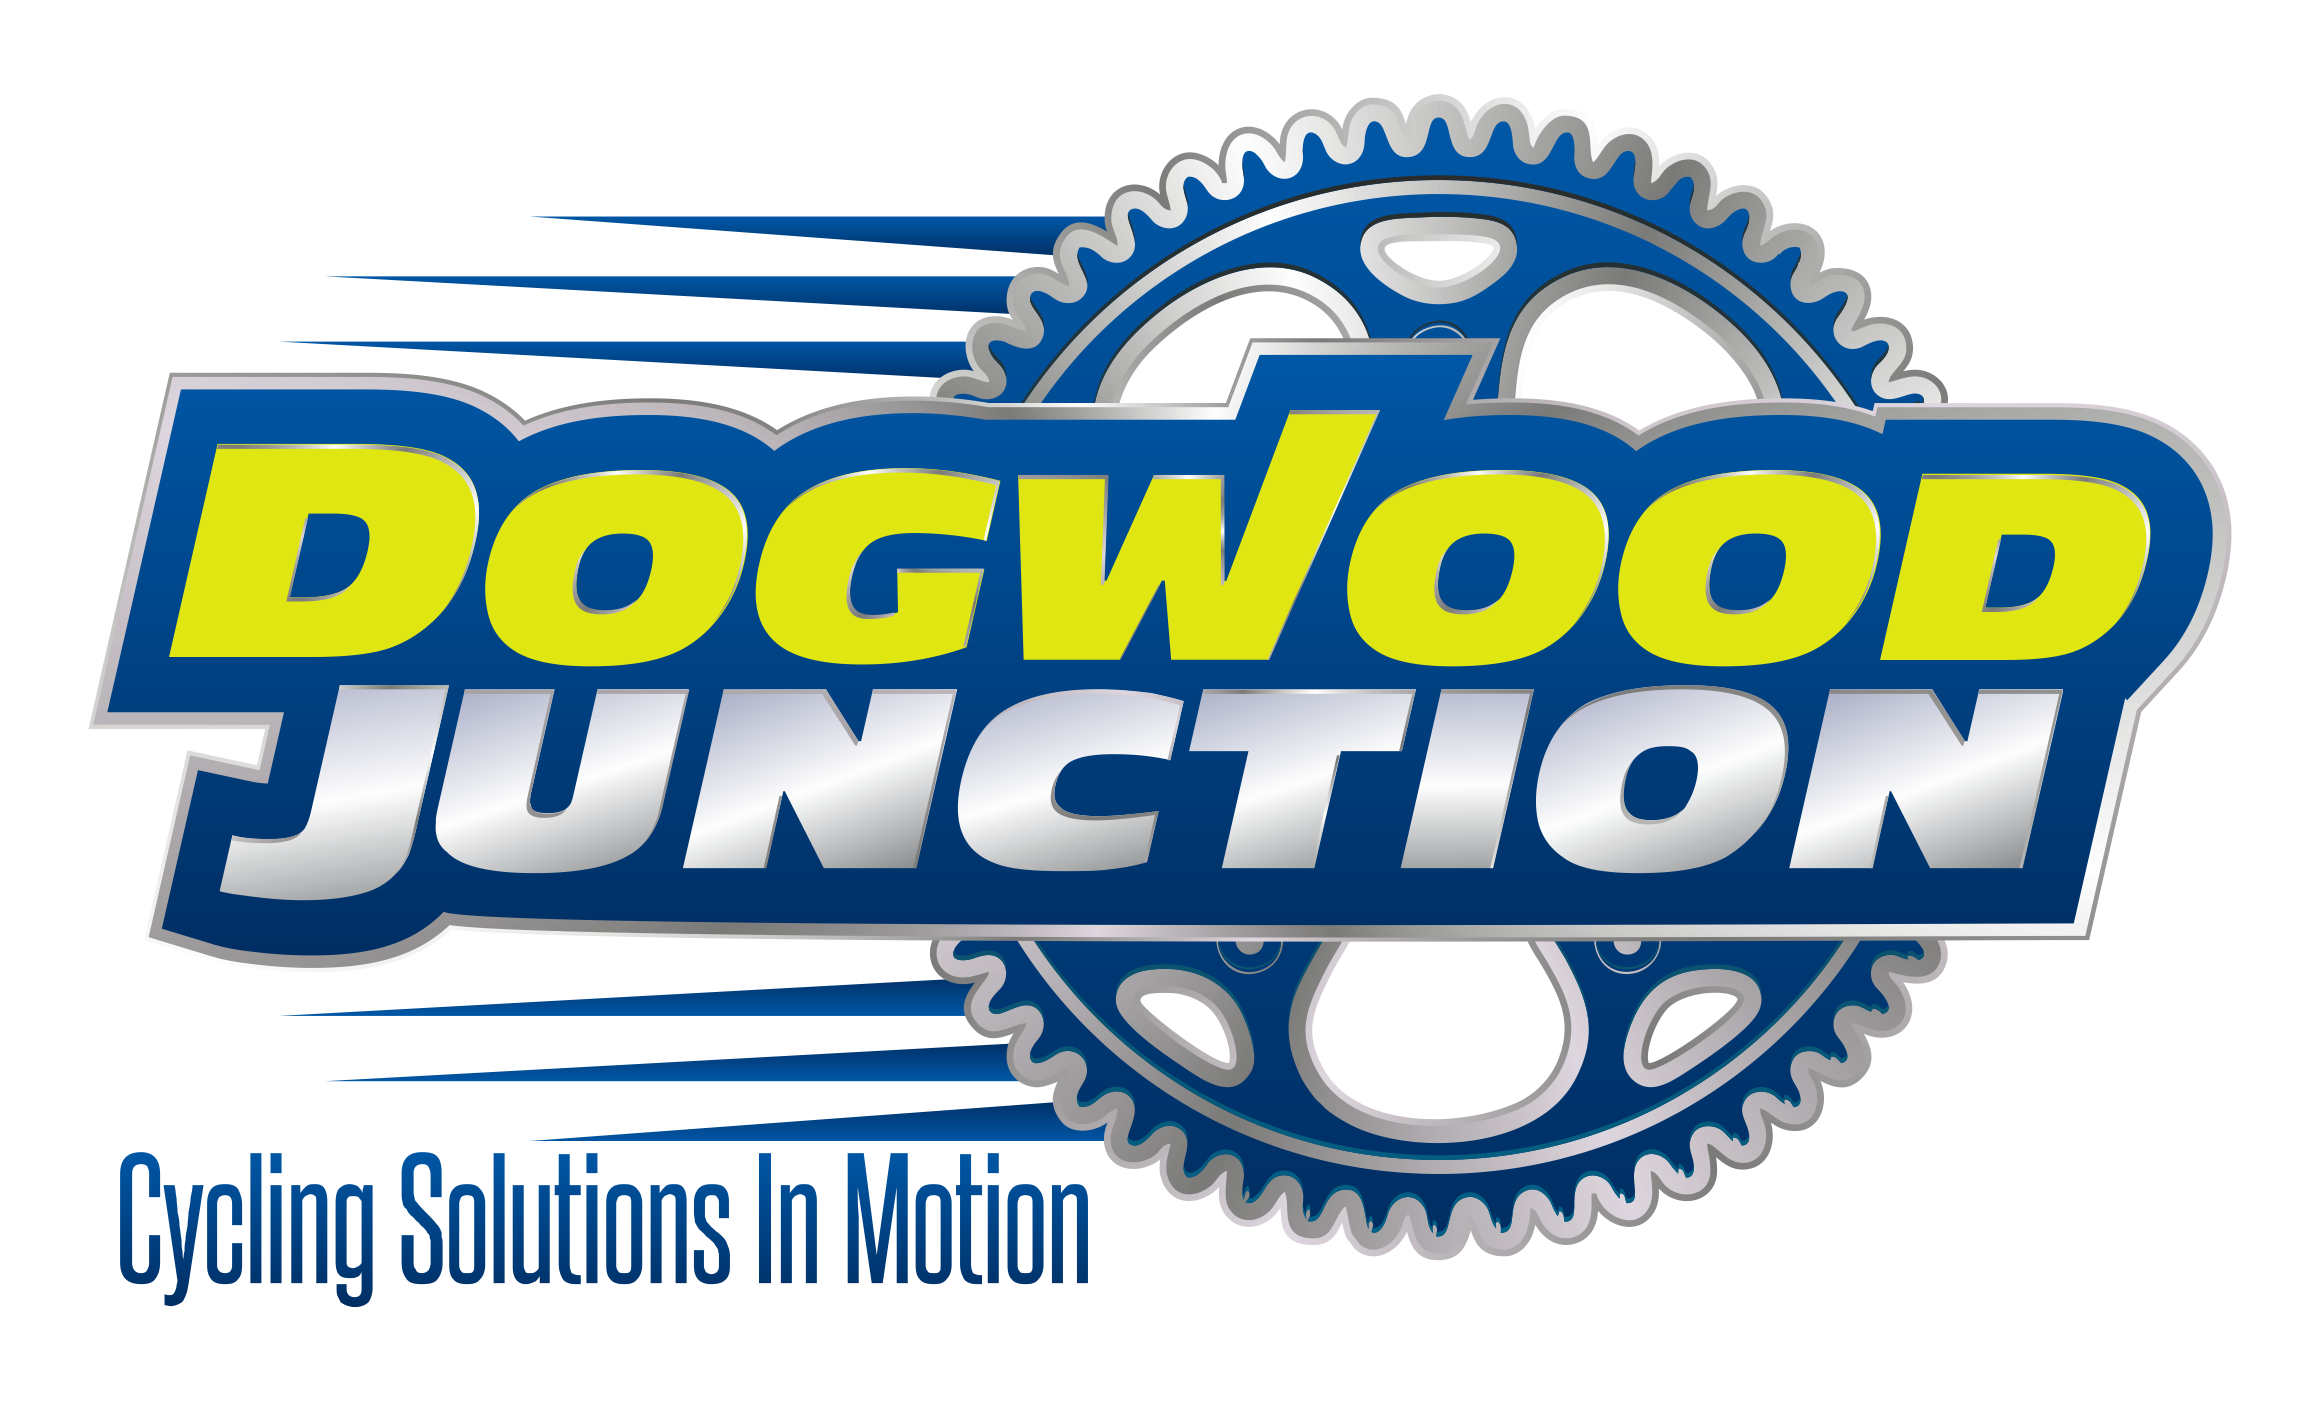 Dogwood Junction